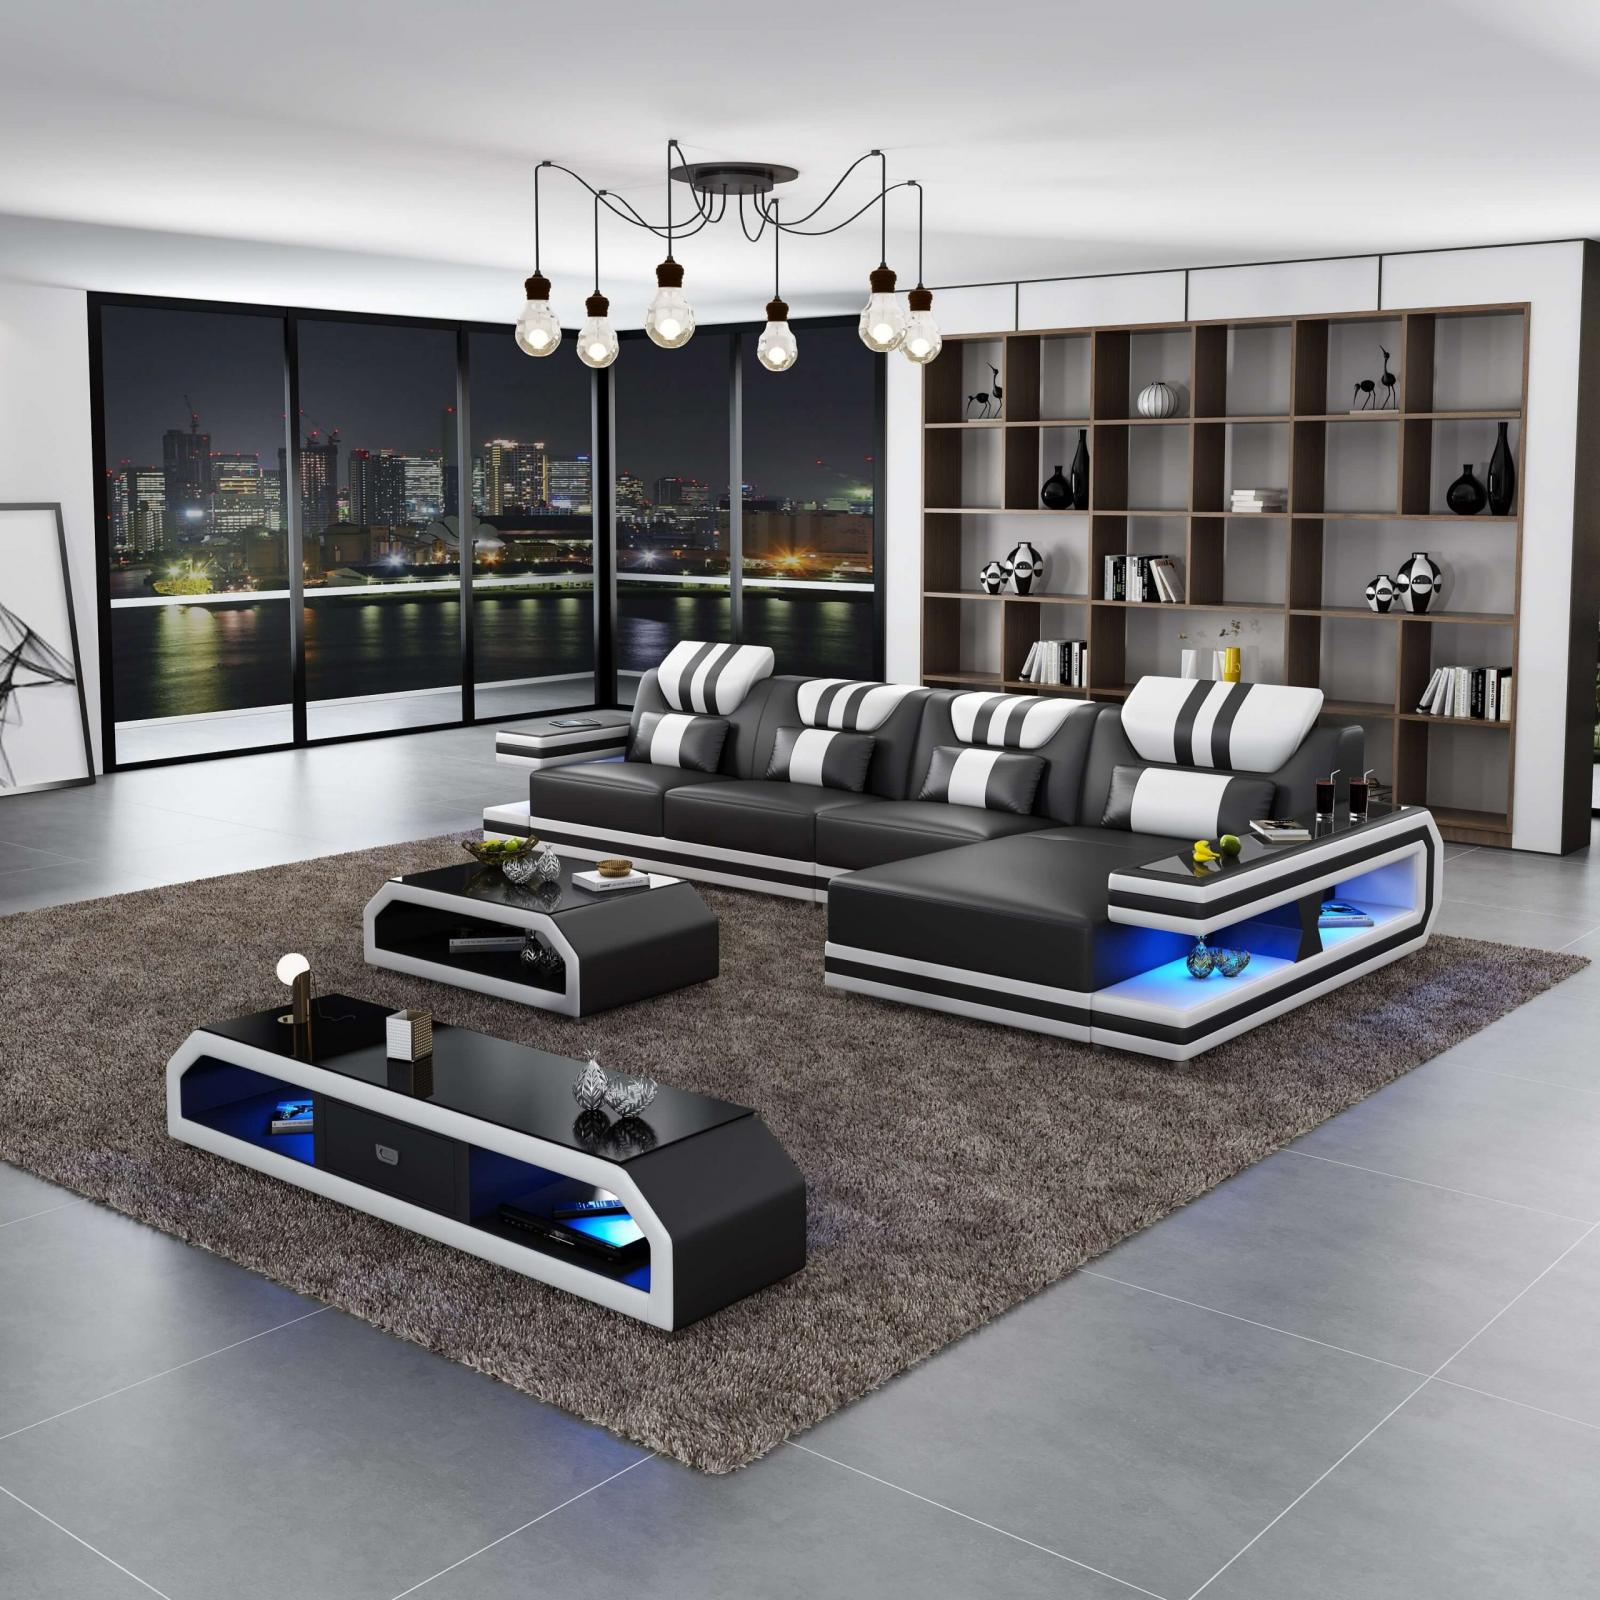 Contemporary, Modern Black, White Italian Leather and Wood, Genuine leather, Solid Hardwood Sectional Sofa RHC LIGHTSPEED by European Furniture